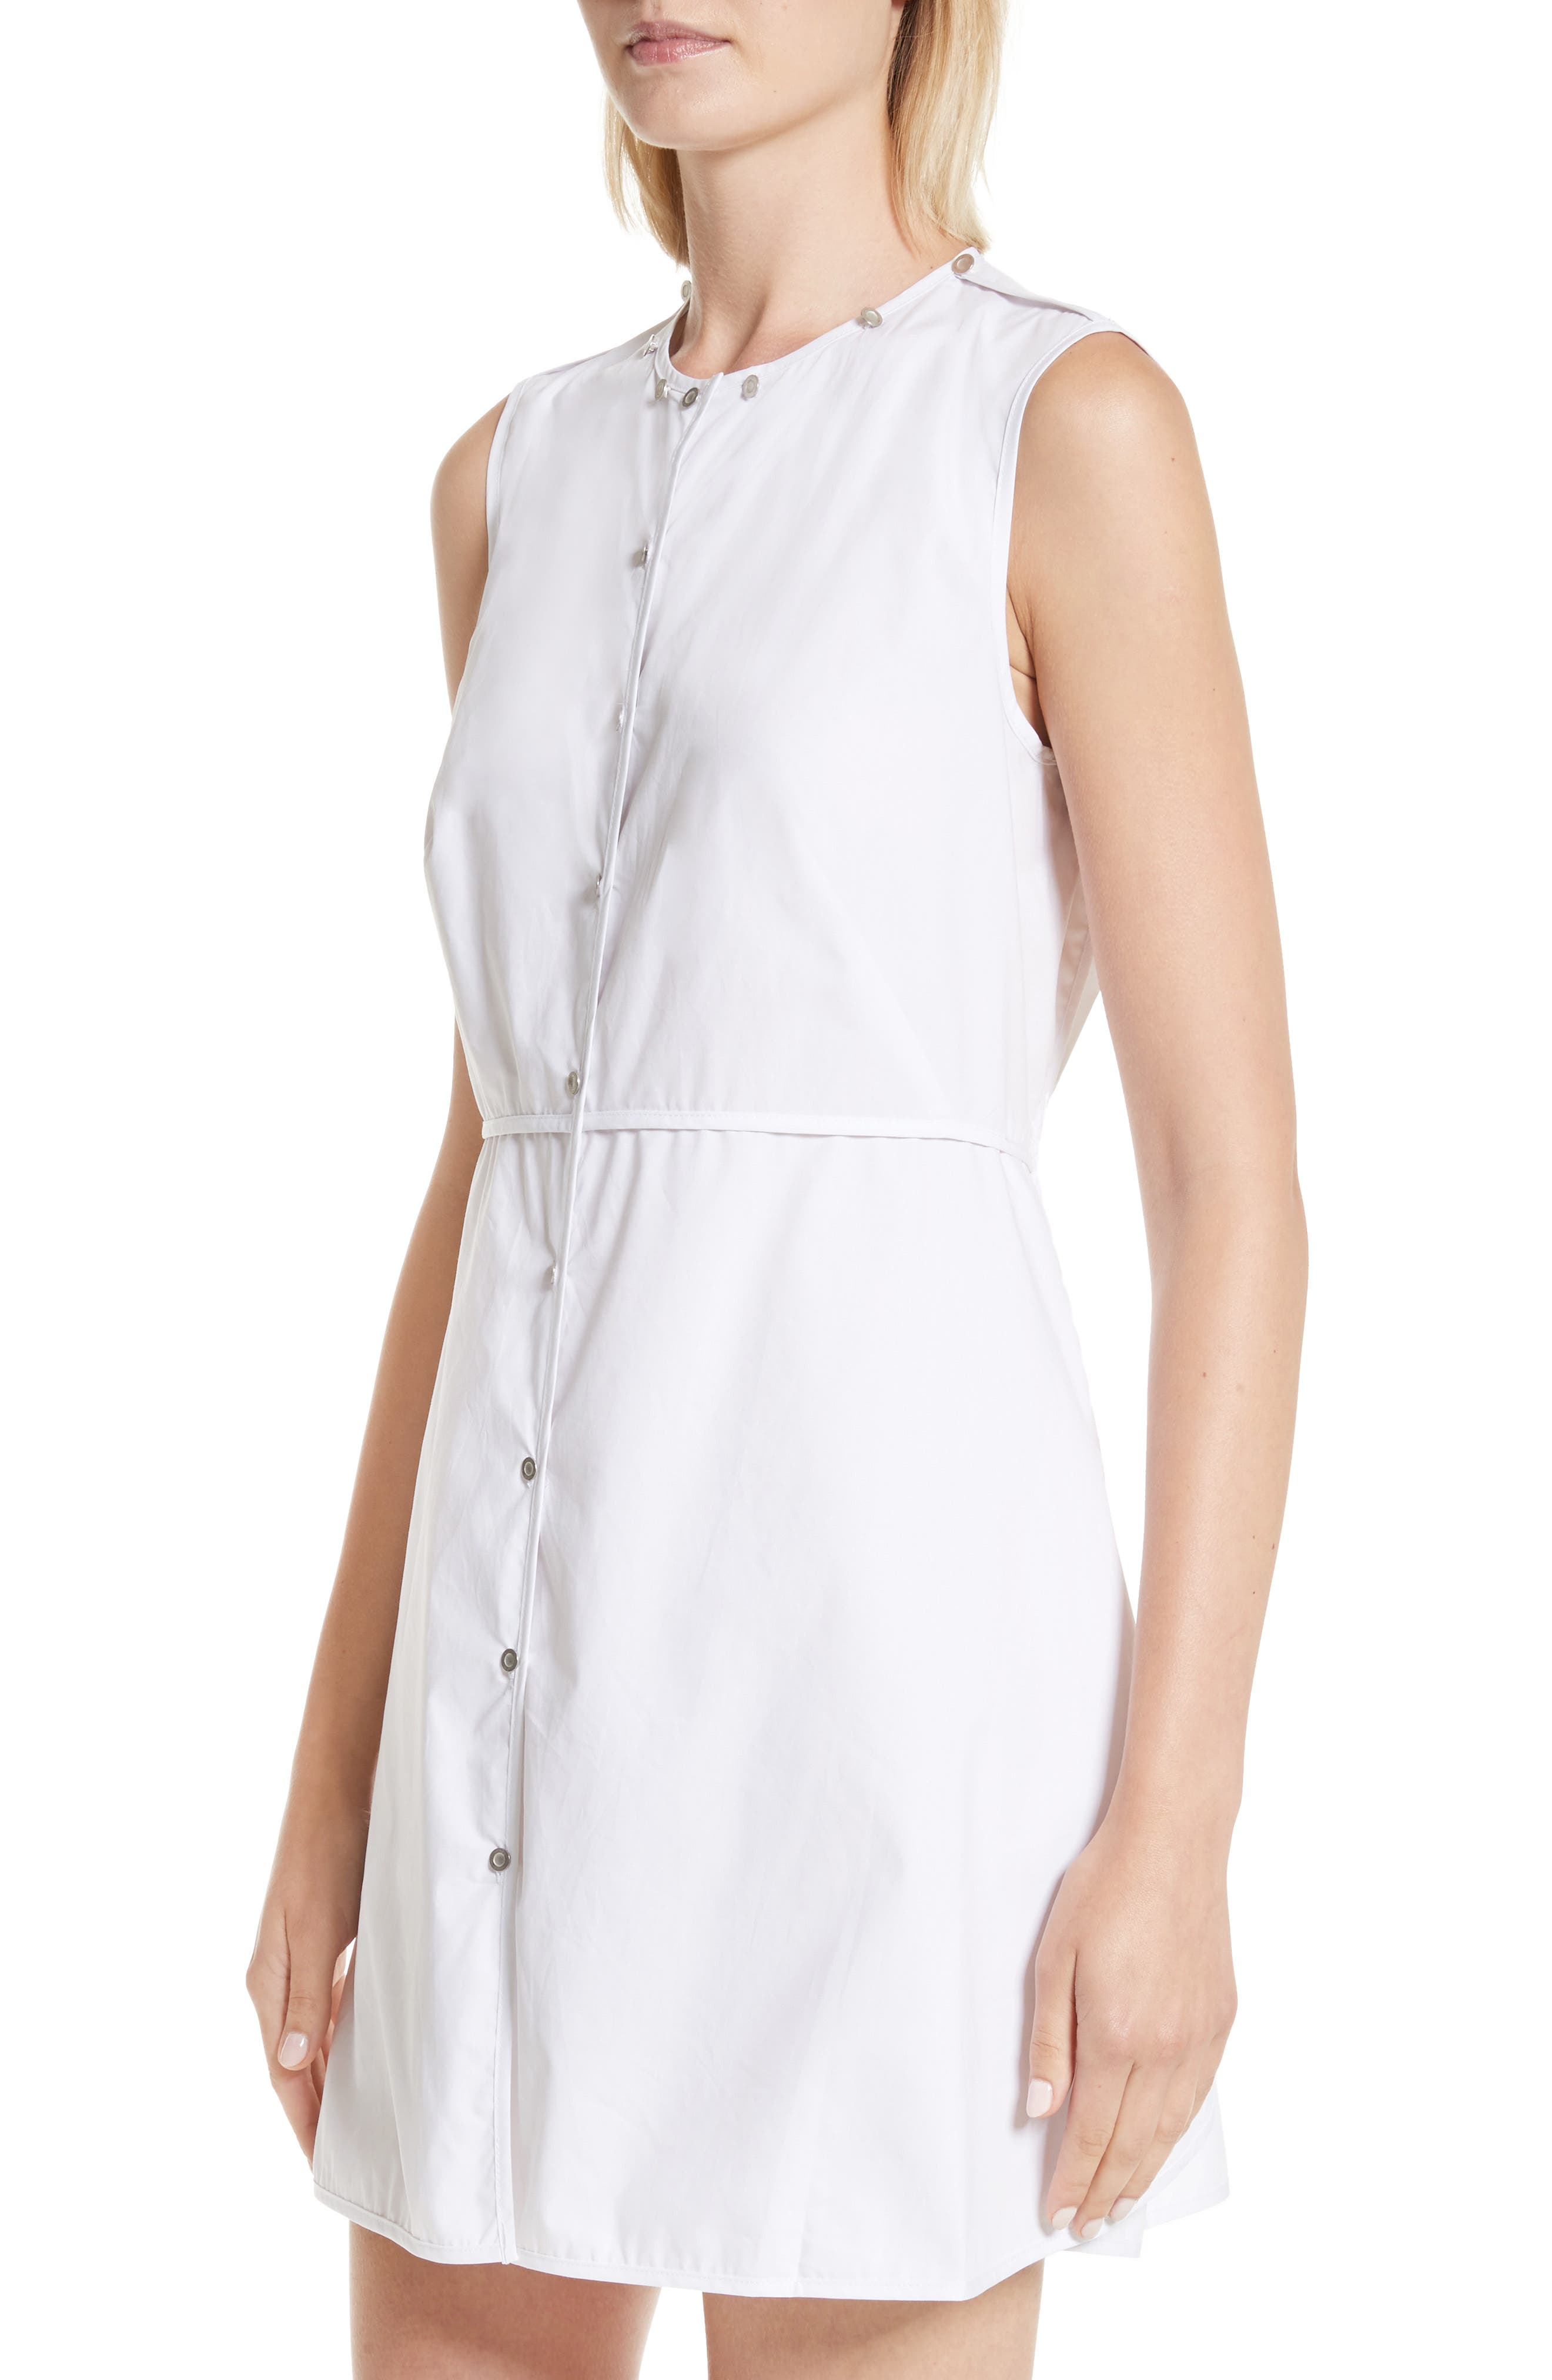 Transformer Poplin Dress with Detachable Embroidered Collar,                             Alternate thumbnail 4, color,                             White